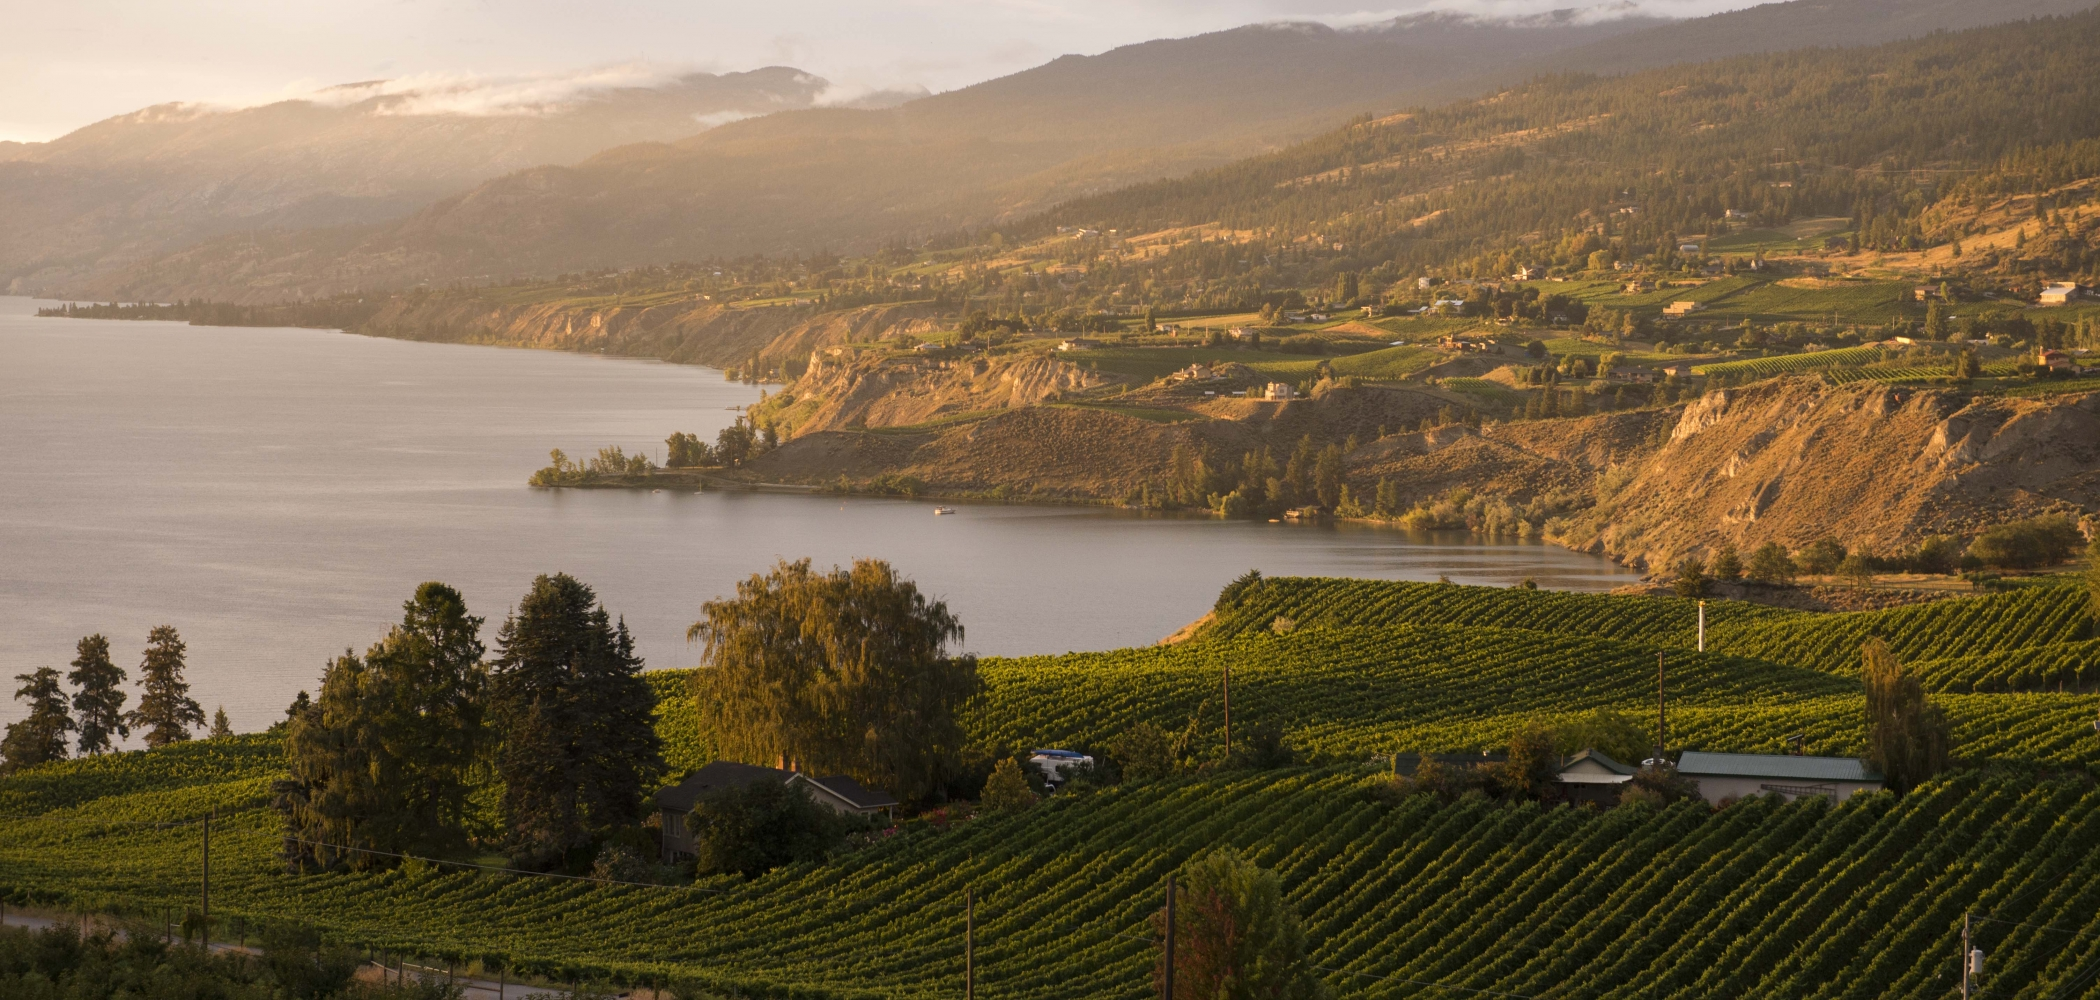 The sunset view of the vineyards on the east side of Okanagan Lake towards Naramata from Munson Mountain, Penticton, BC.